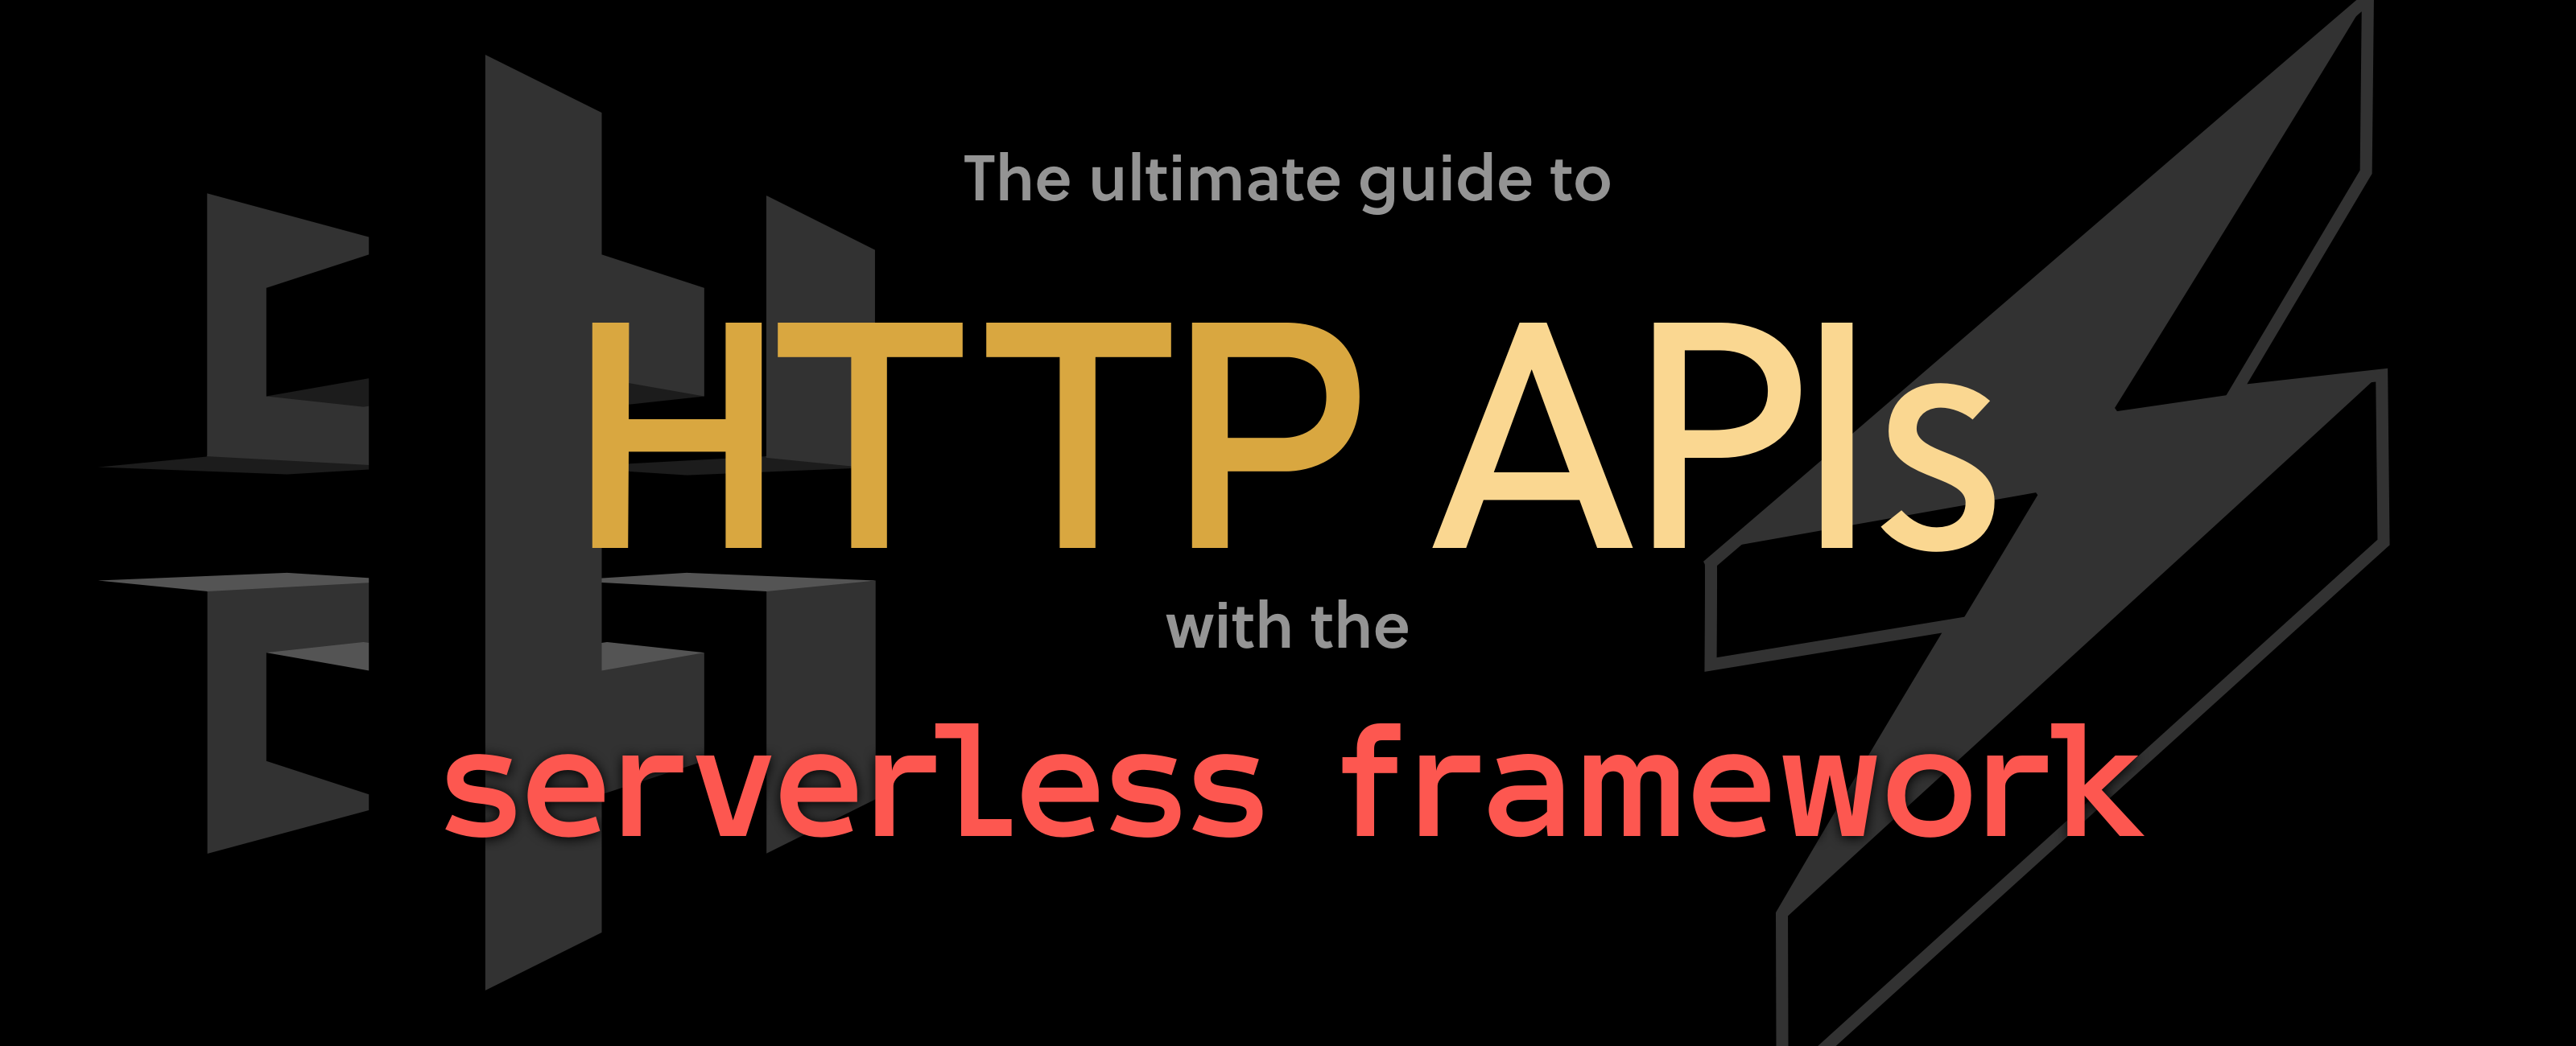 New Serverless Guide to AWS HTTP APIS